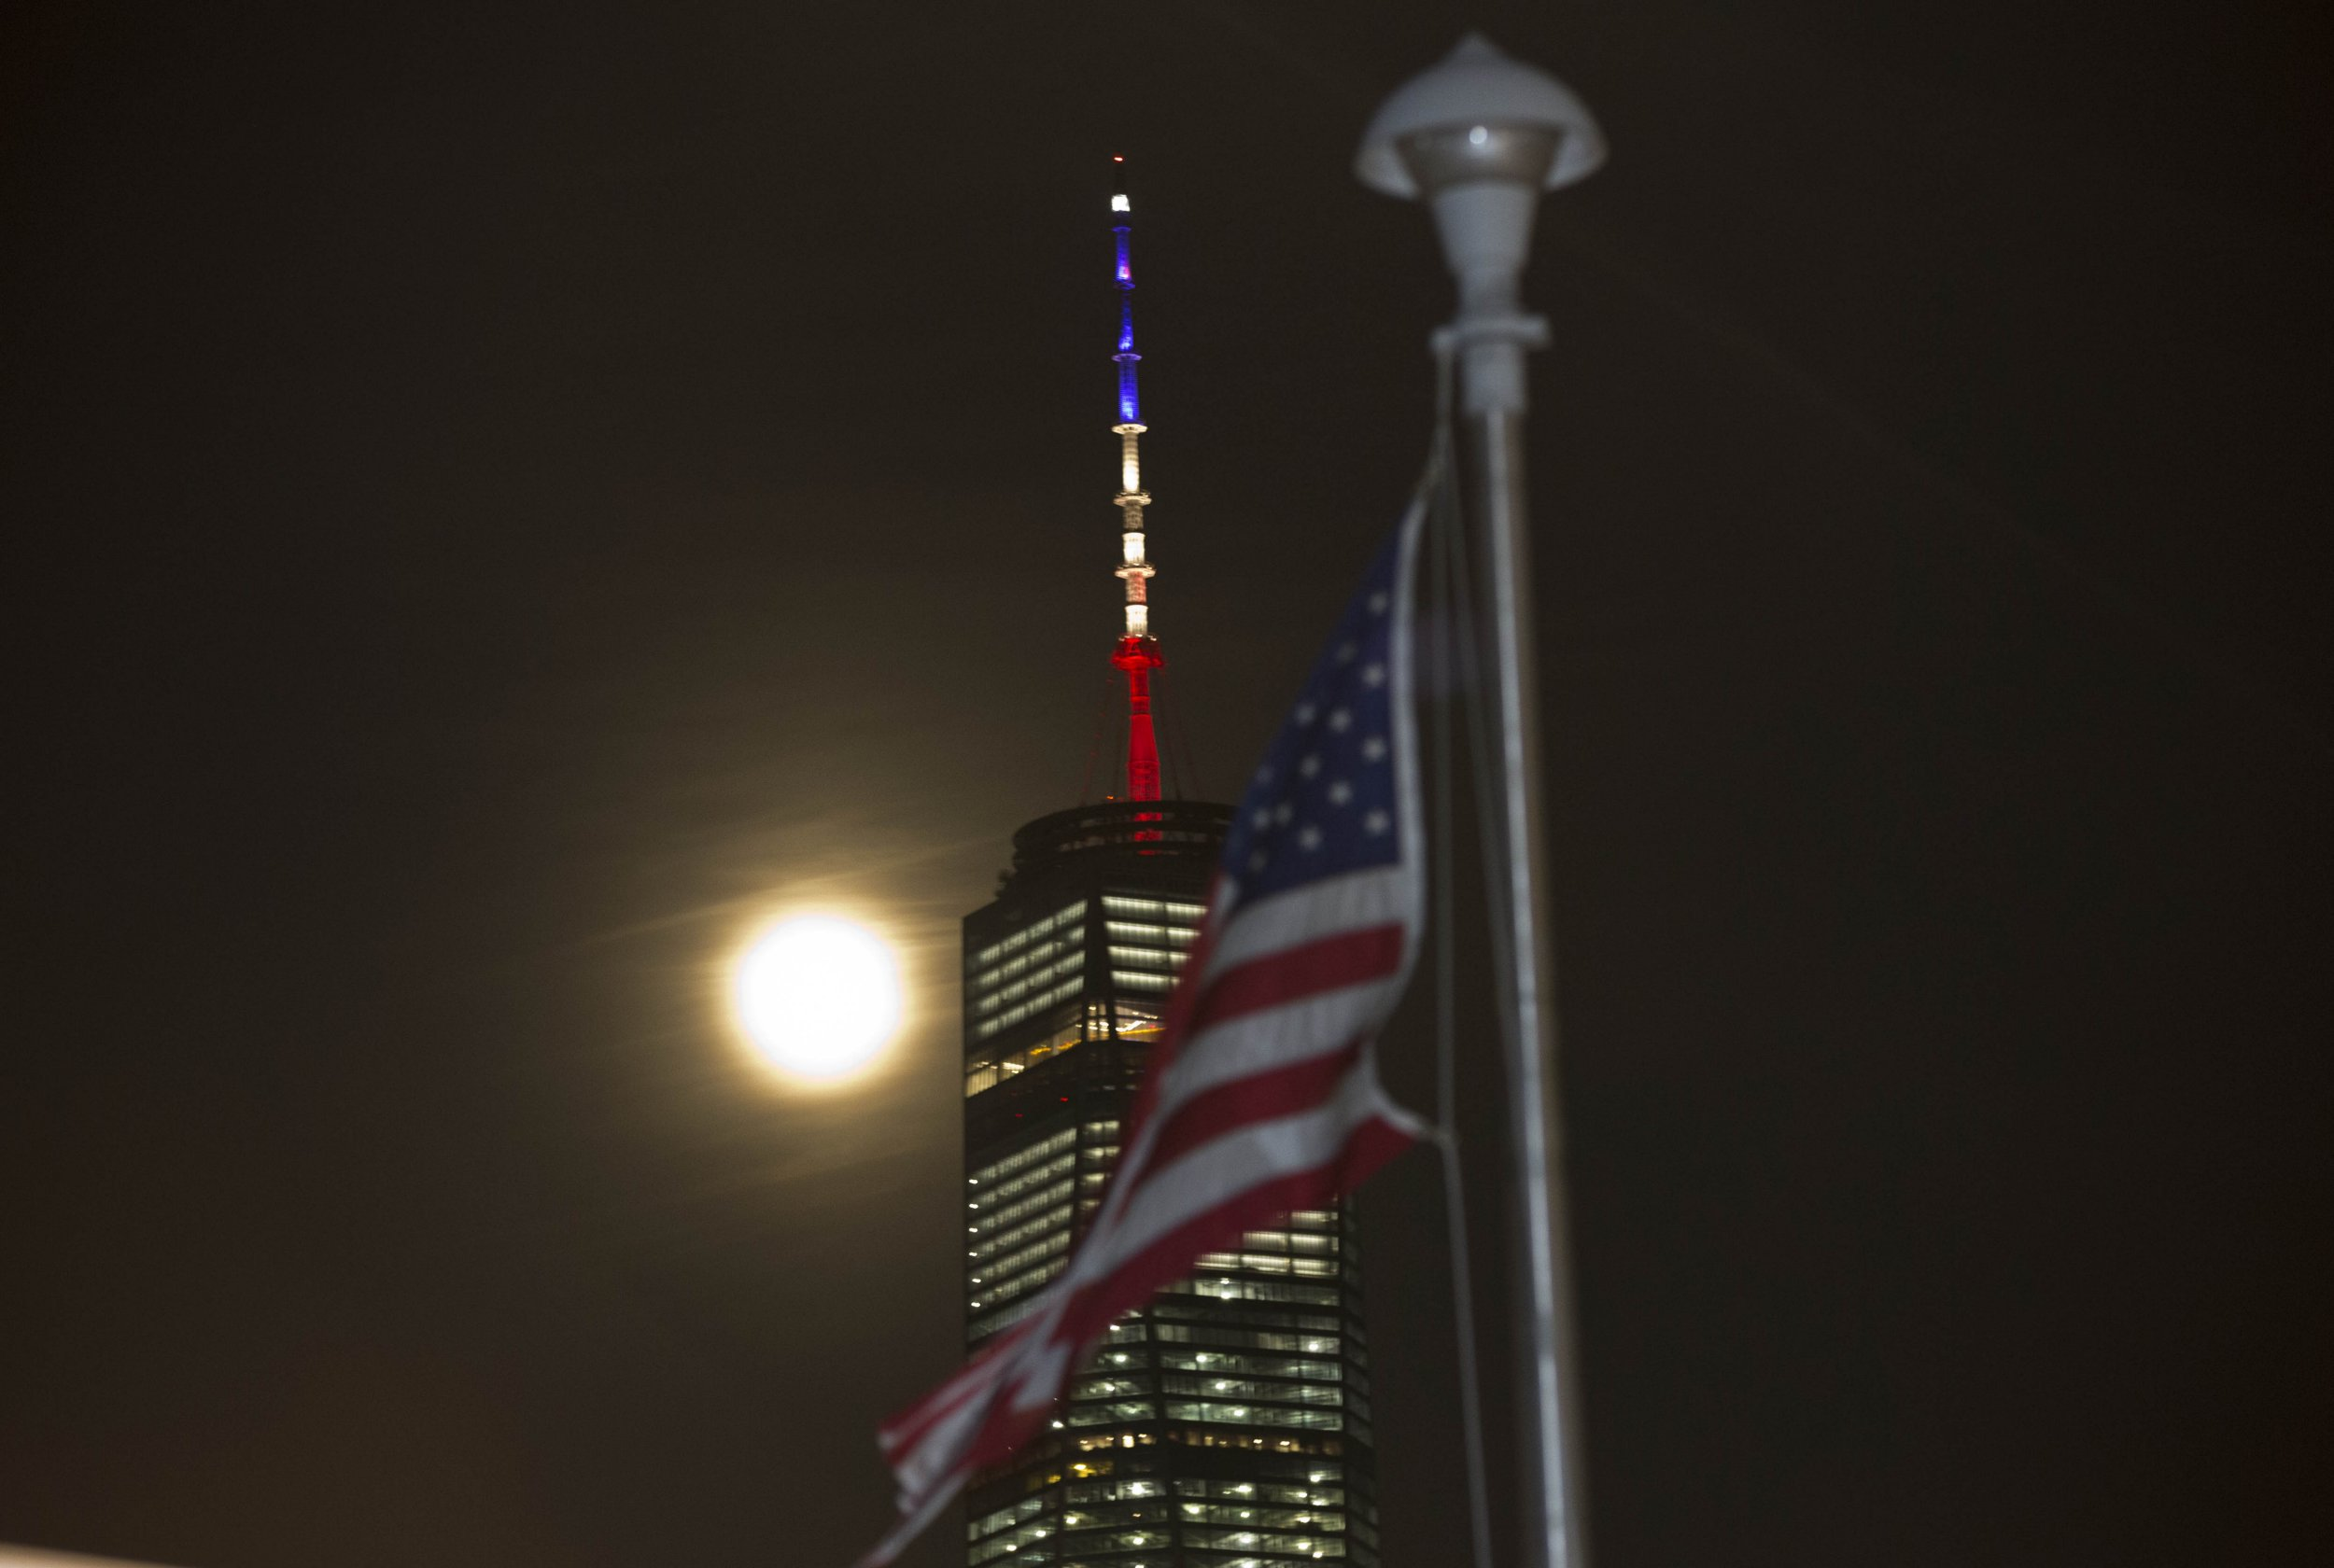 The full moon rises behind One World Trade Center on March 22, 2016 in New York, it's mast displaying the colors of the Belgian flag in a show of support following the terrorist attacks in Brussels. But the tribute from the tallest building in the United States, built on the site of the 9/11 attacks in New York, sparked confusion after a series of published photographs showed the colors to be blue, white and red -- those of the French flag -- that lit up the Trade Center after the November attacks in Paris. An AFP photographer said the colors on the World Trade Center appeared correct to the naked eye, but did not translate accurately in the camera, due to being shot against the dark night-time sky. / AFP PHOTO / TREVOR COLLENSTREVOR COLLENS/AFP/Getty Images